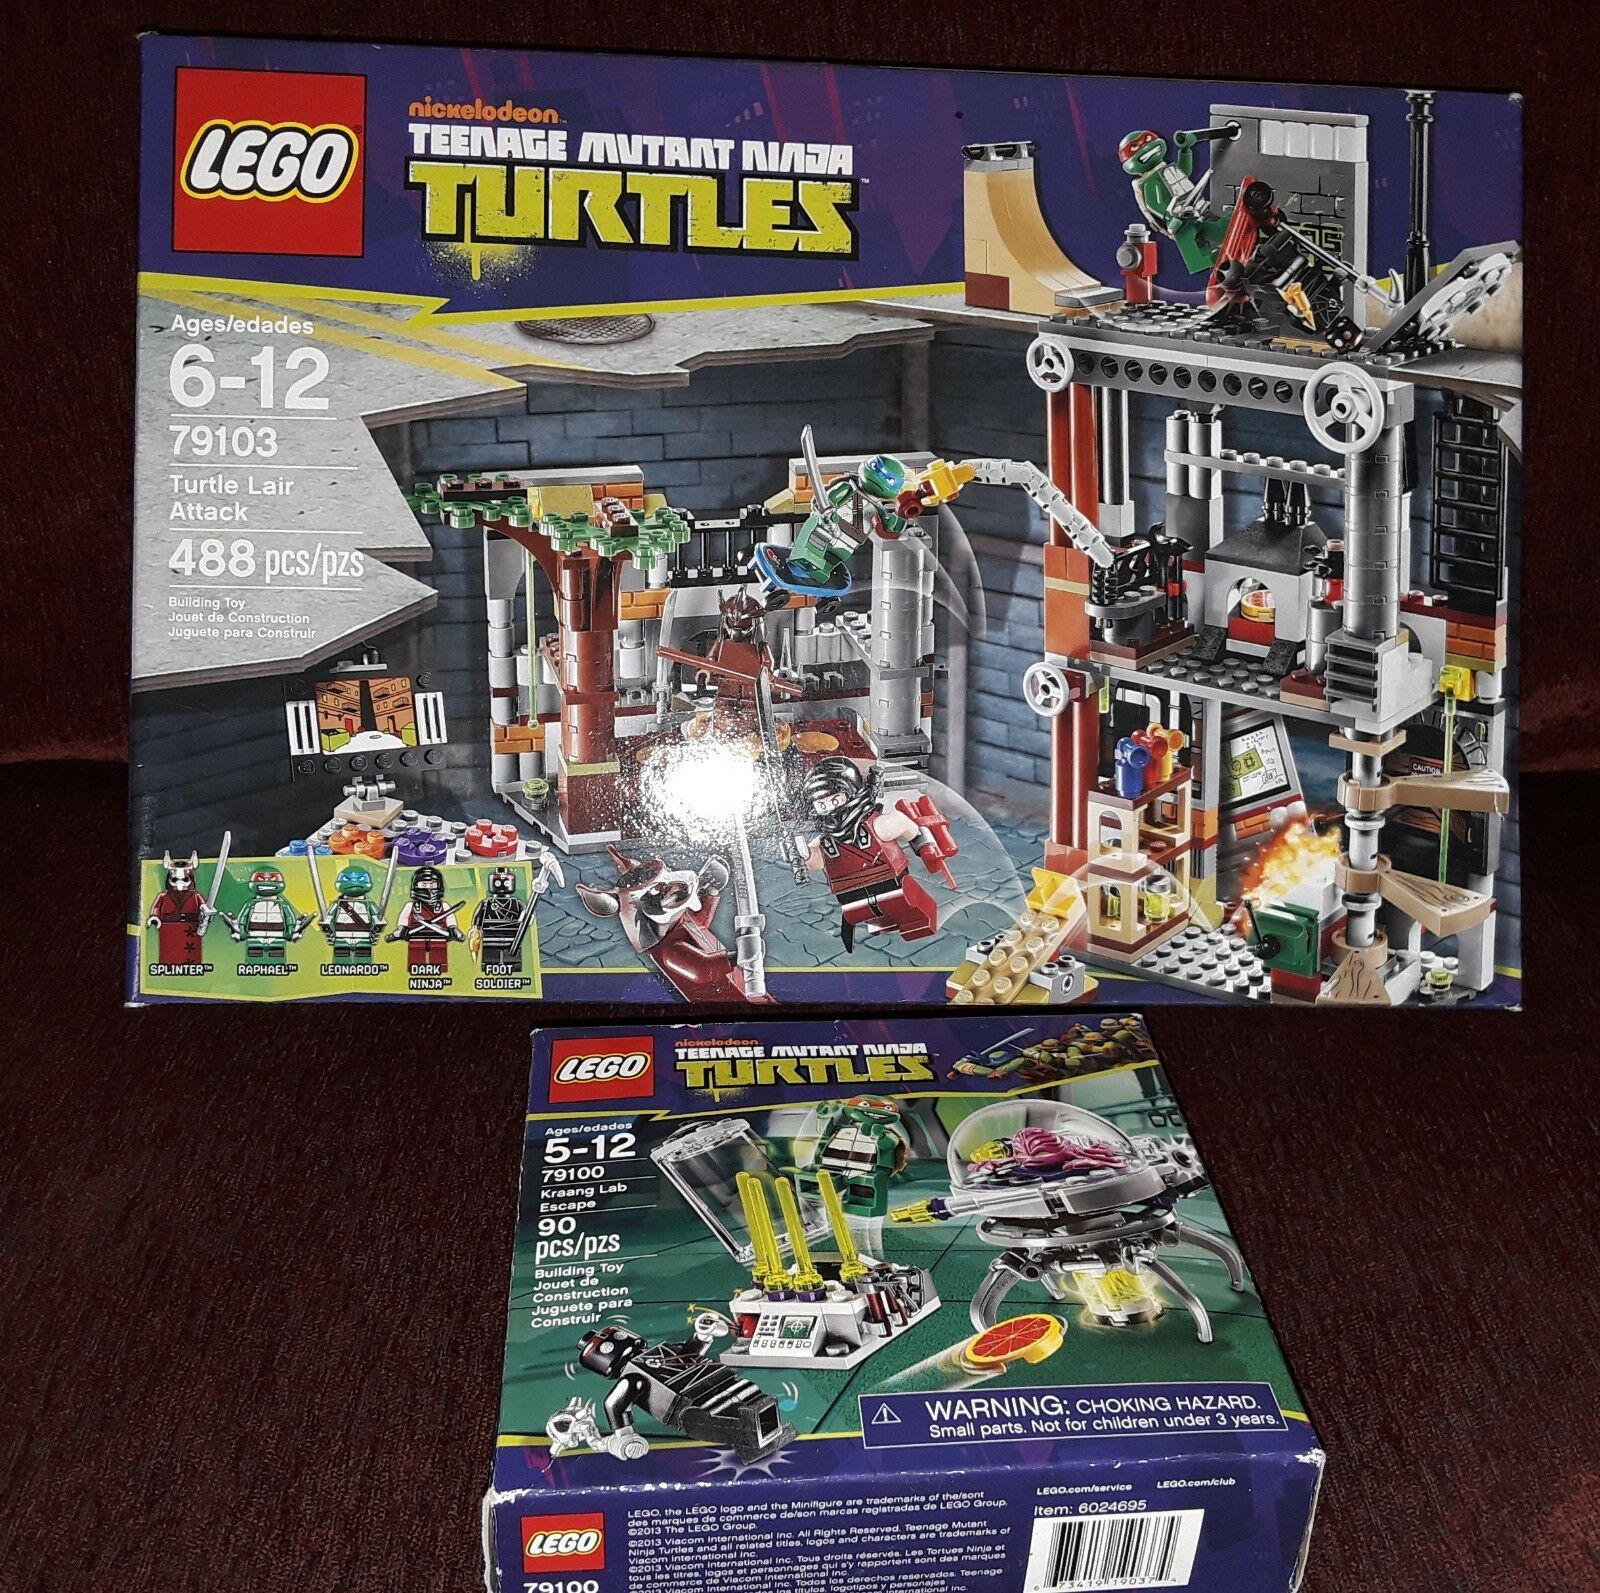 Lego Teenage Mutant Ninja Turtles Turtles Turtles Tmnt guarida ataque Krang Lab Escape Rare fuera de imprenta Nuevo  ahorra hasta un 70%